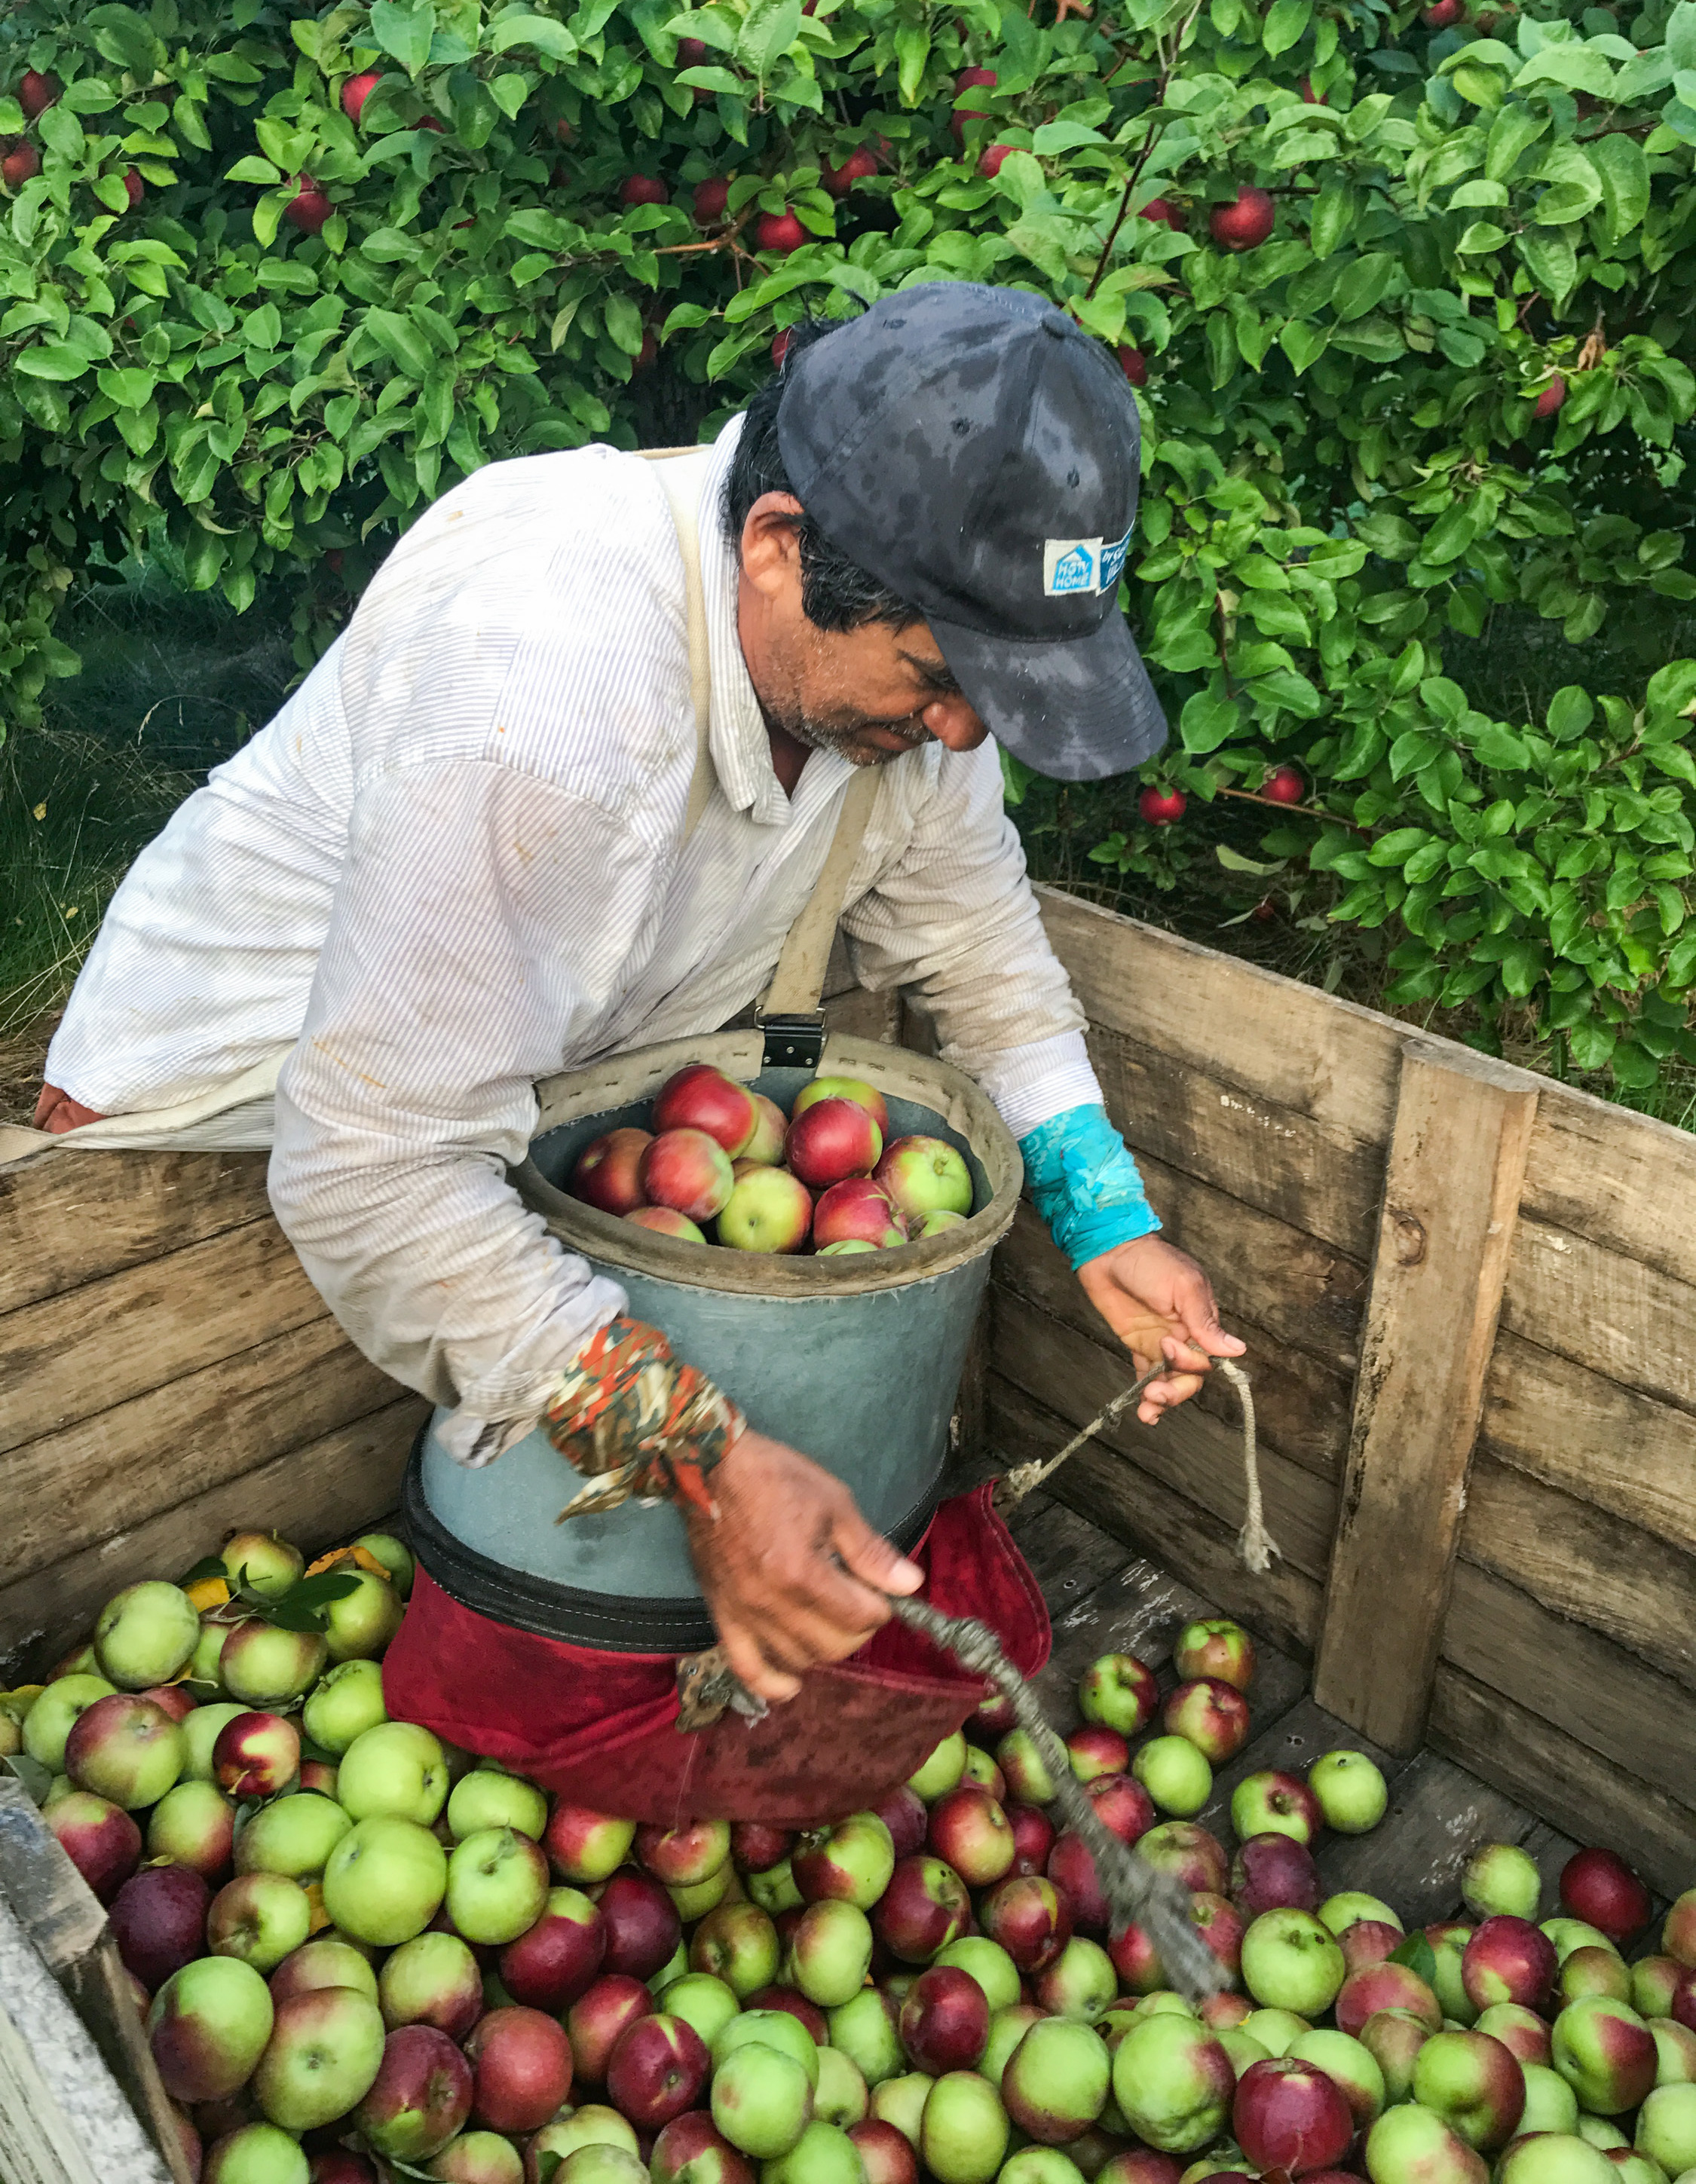 Migrant worker Daniel Avellaneda unloads a bushel bag of McIntosh apples on Michigan's Old Mission Peninsula. Each bag weighs about 50 pounds per load.